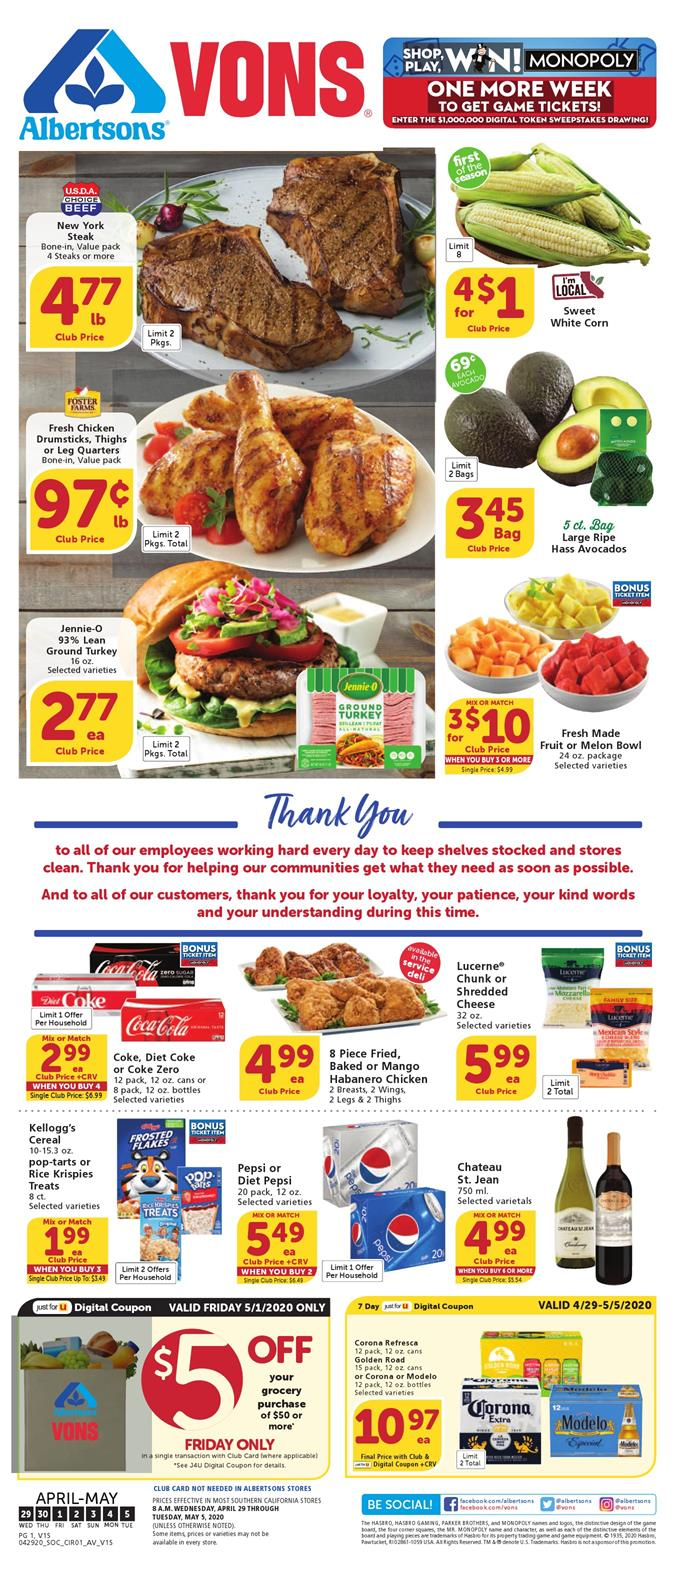 vons weekly ad apr 29 2020